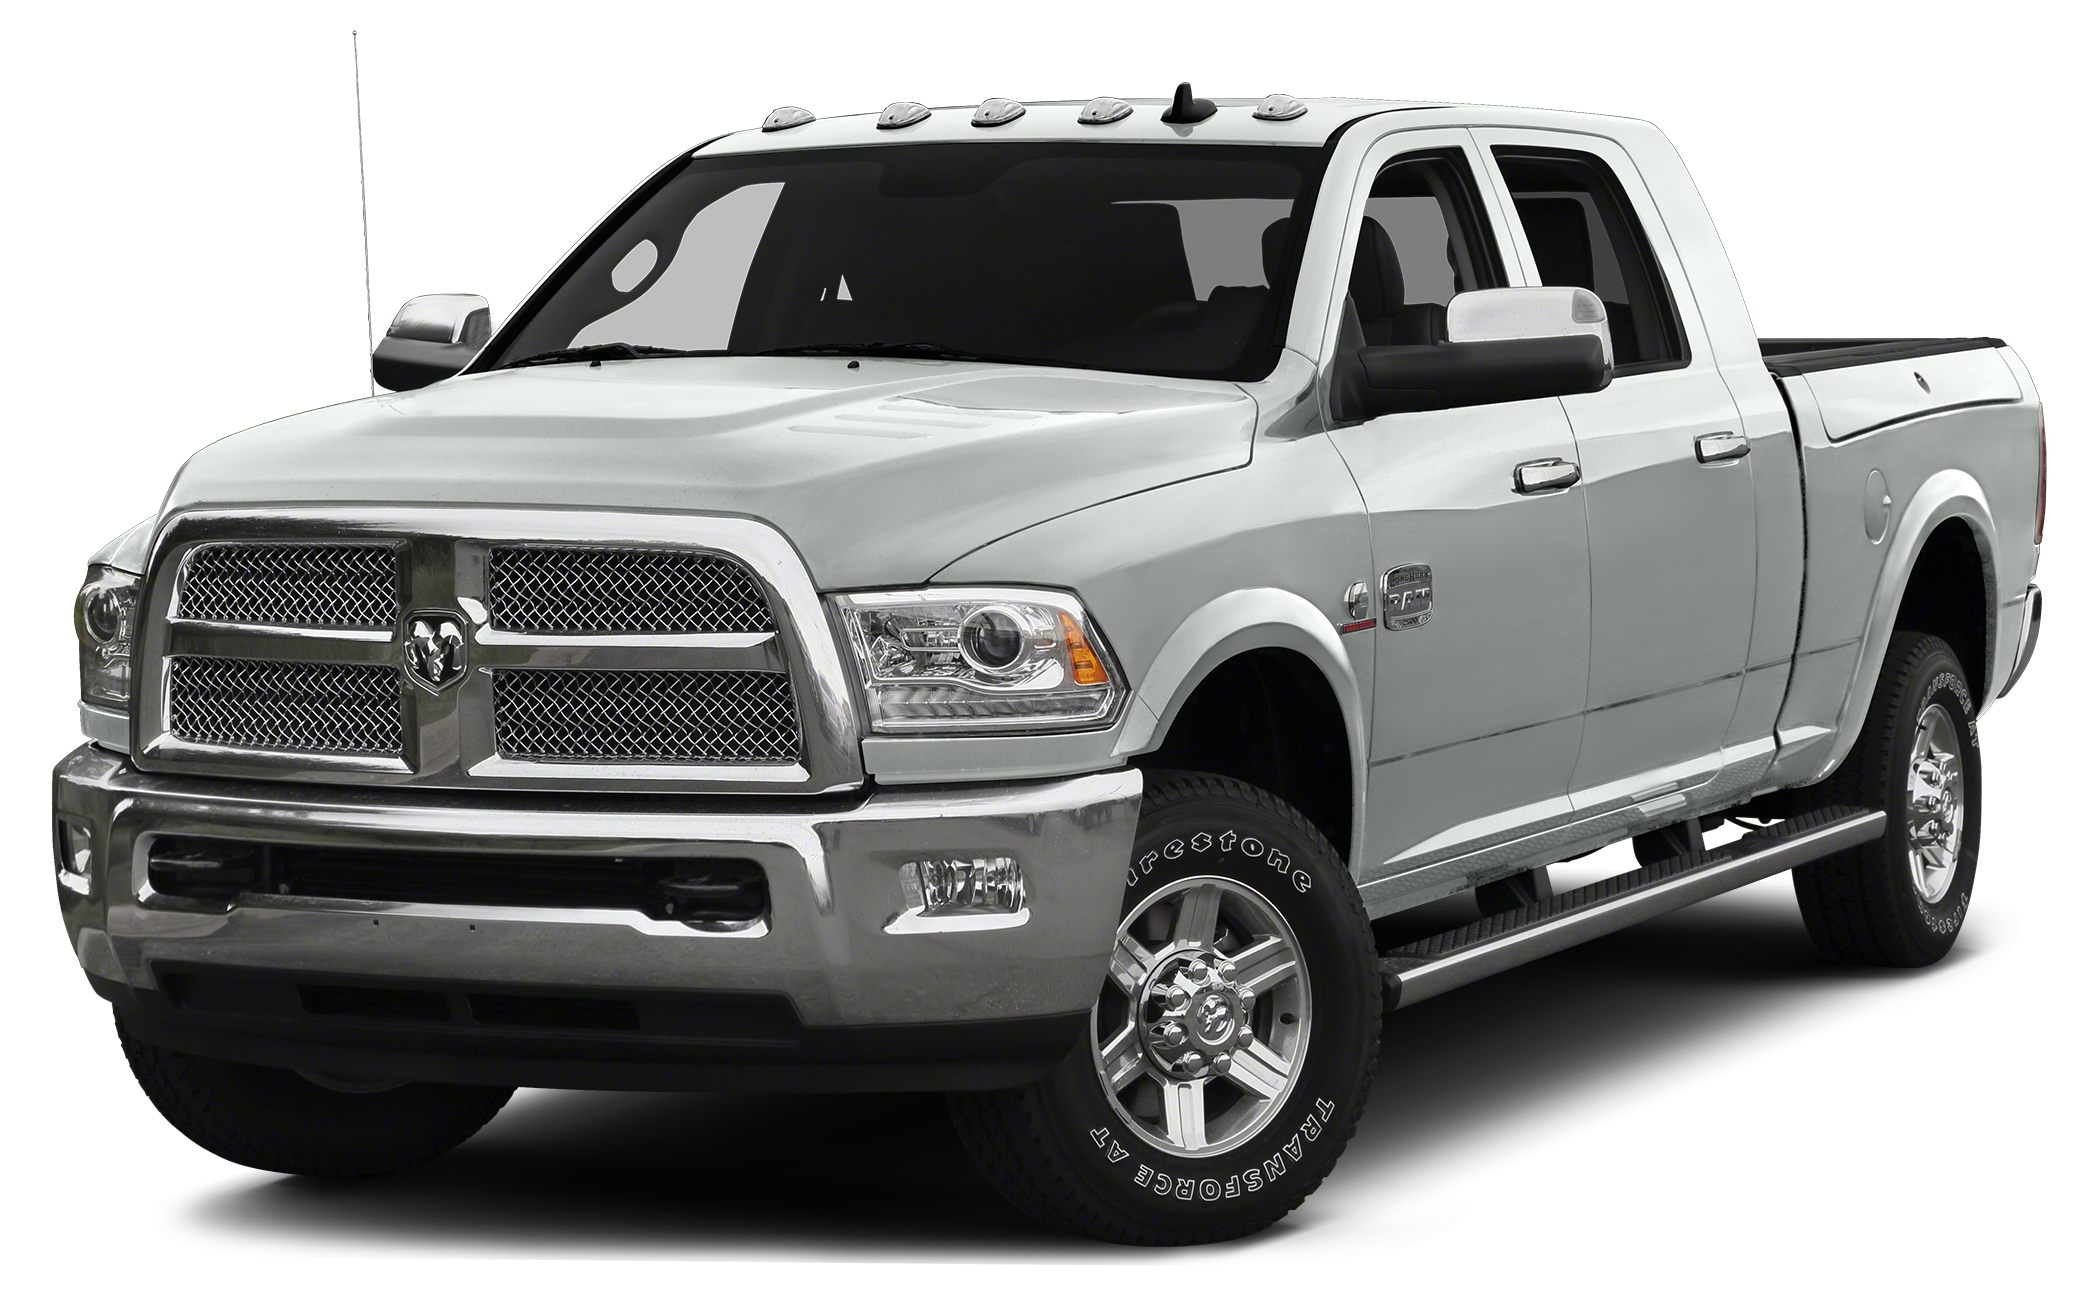 2016 RAM 2500 Laramie Navigation HeatedCooled Leather Seats SPRAY IN BEDLINER QUICK ORDER PACK